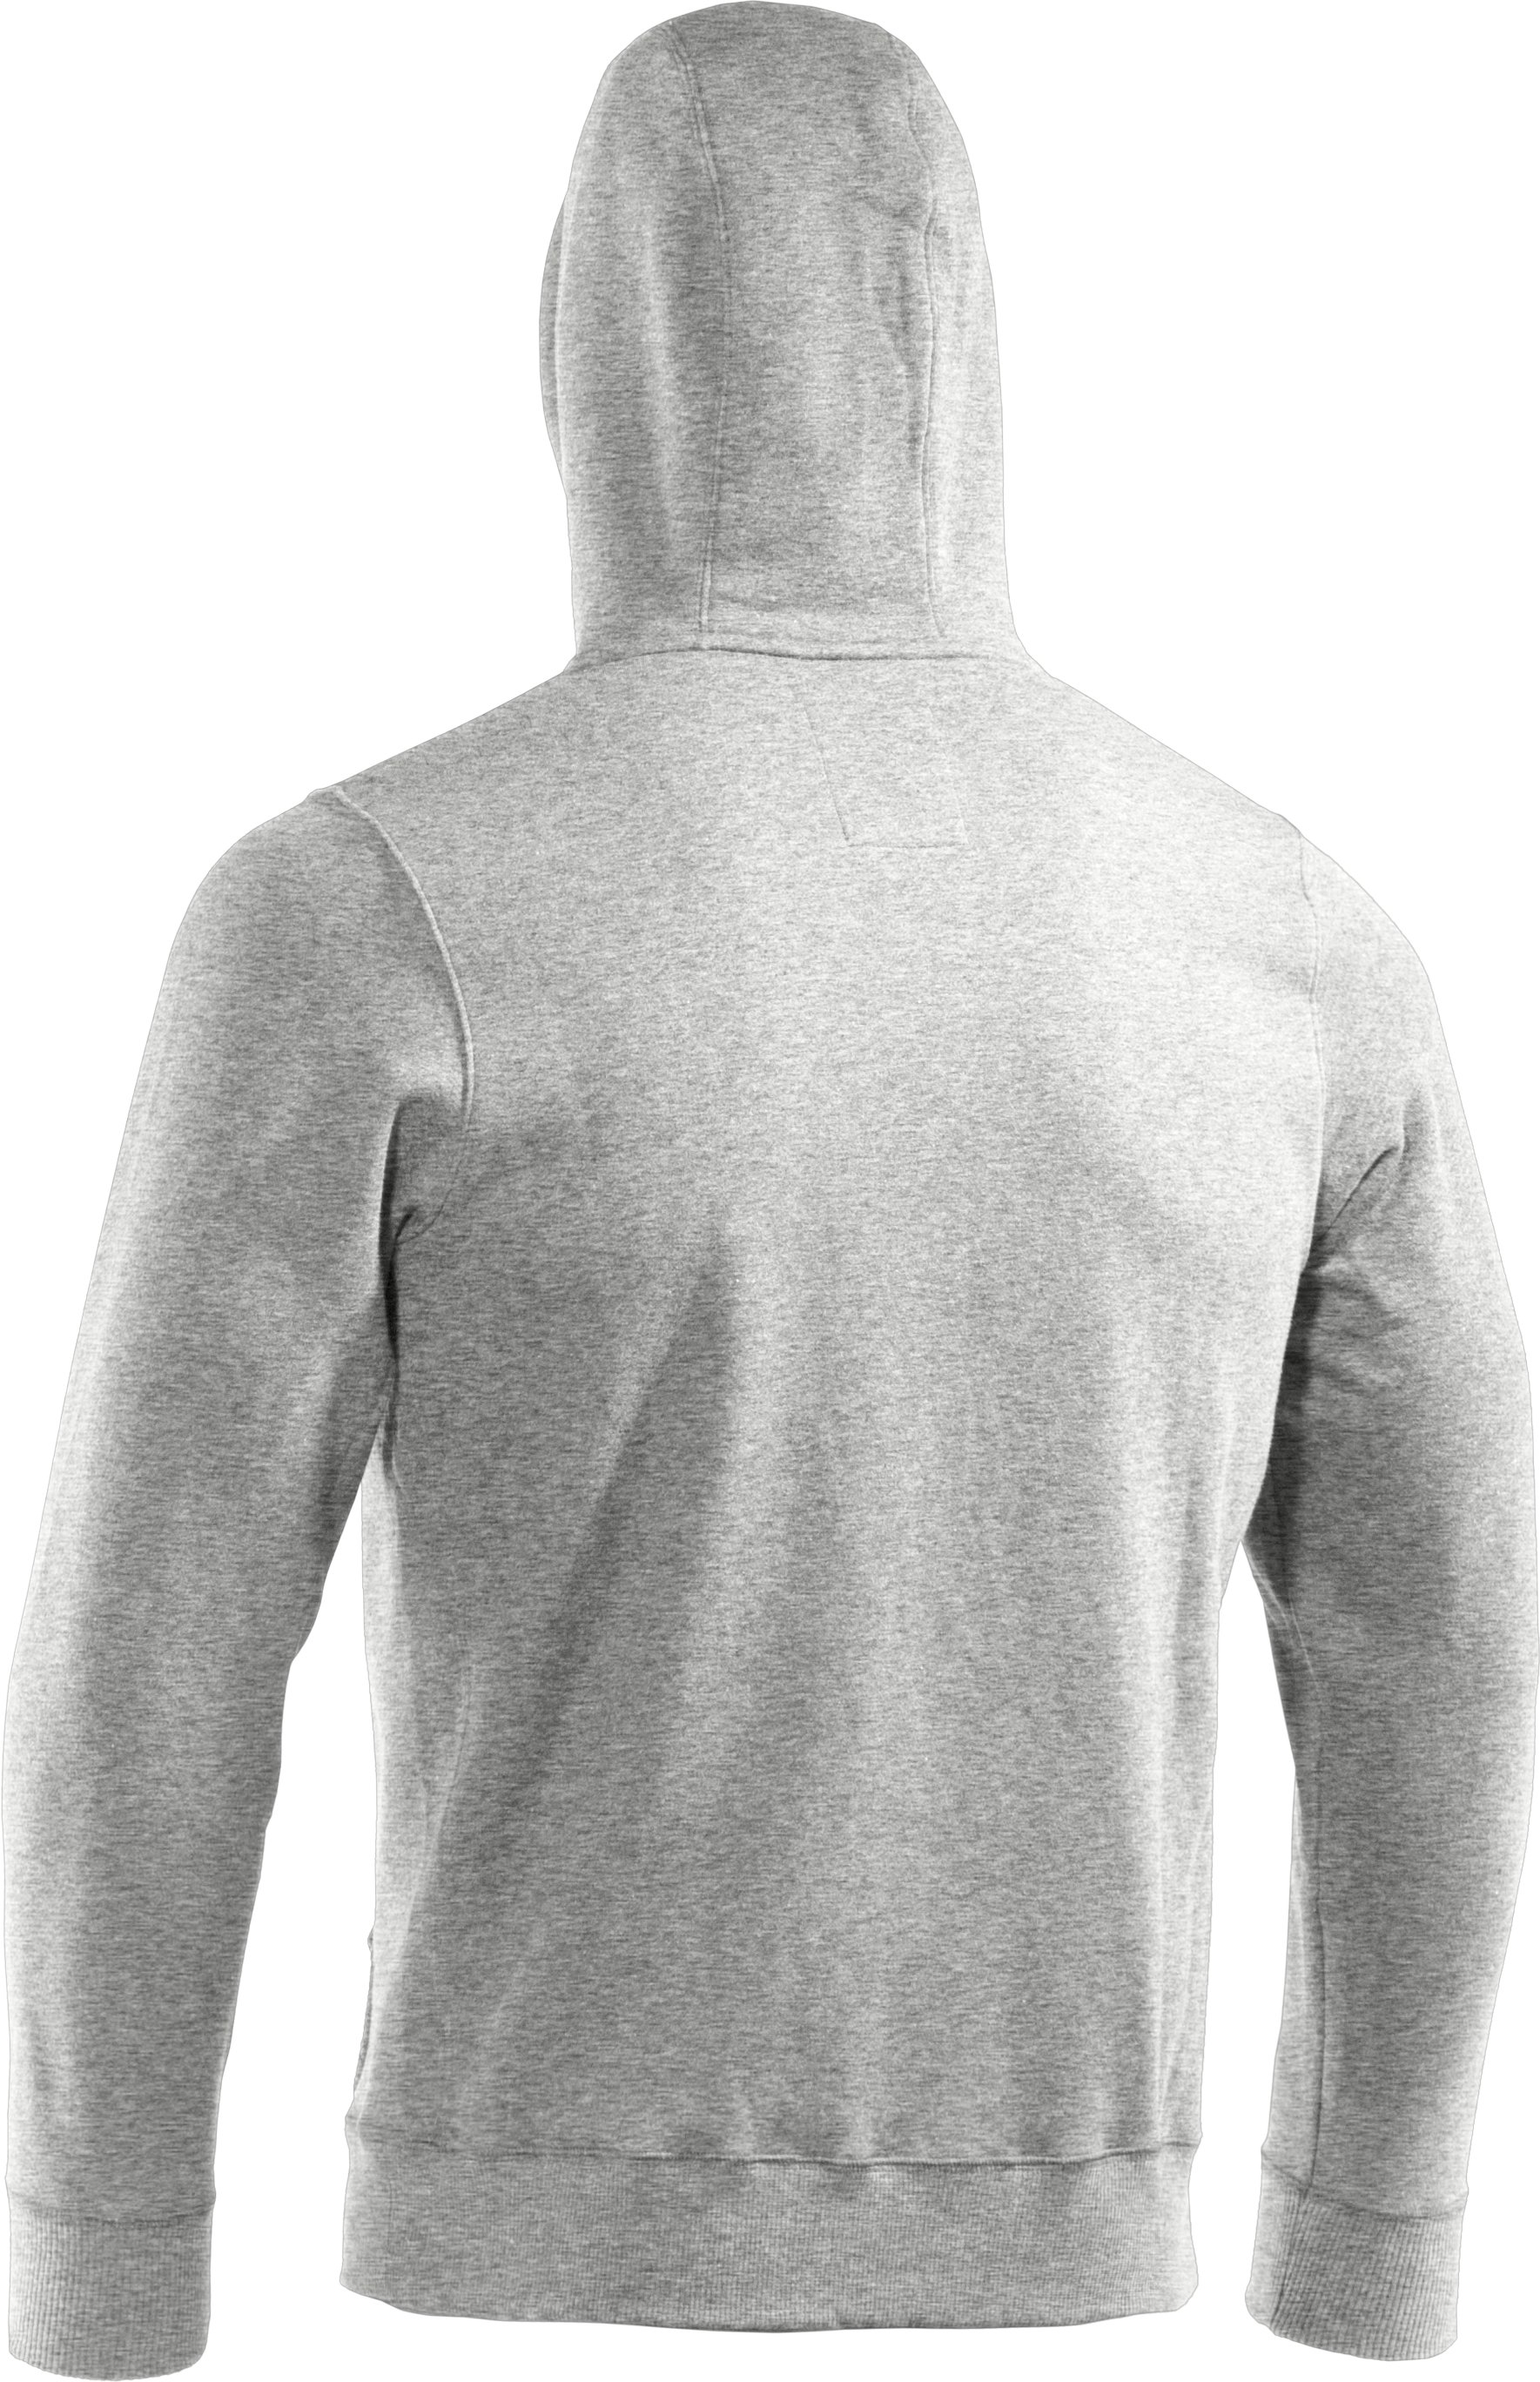 Men's Charged Cotton® Storm Full Zip Hoodie, Silver Heather, undefined